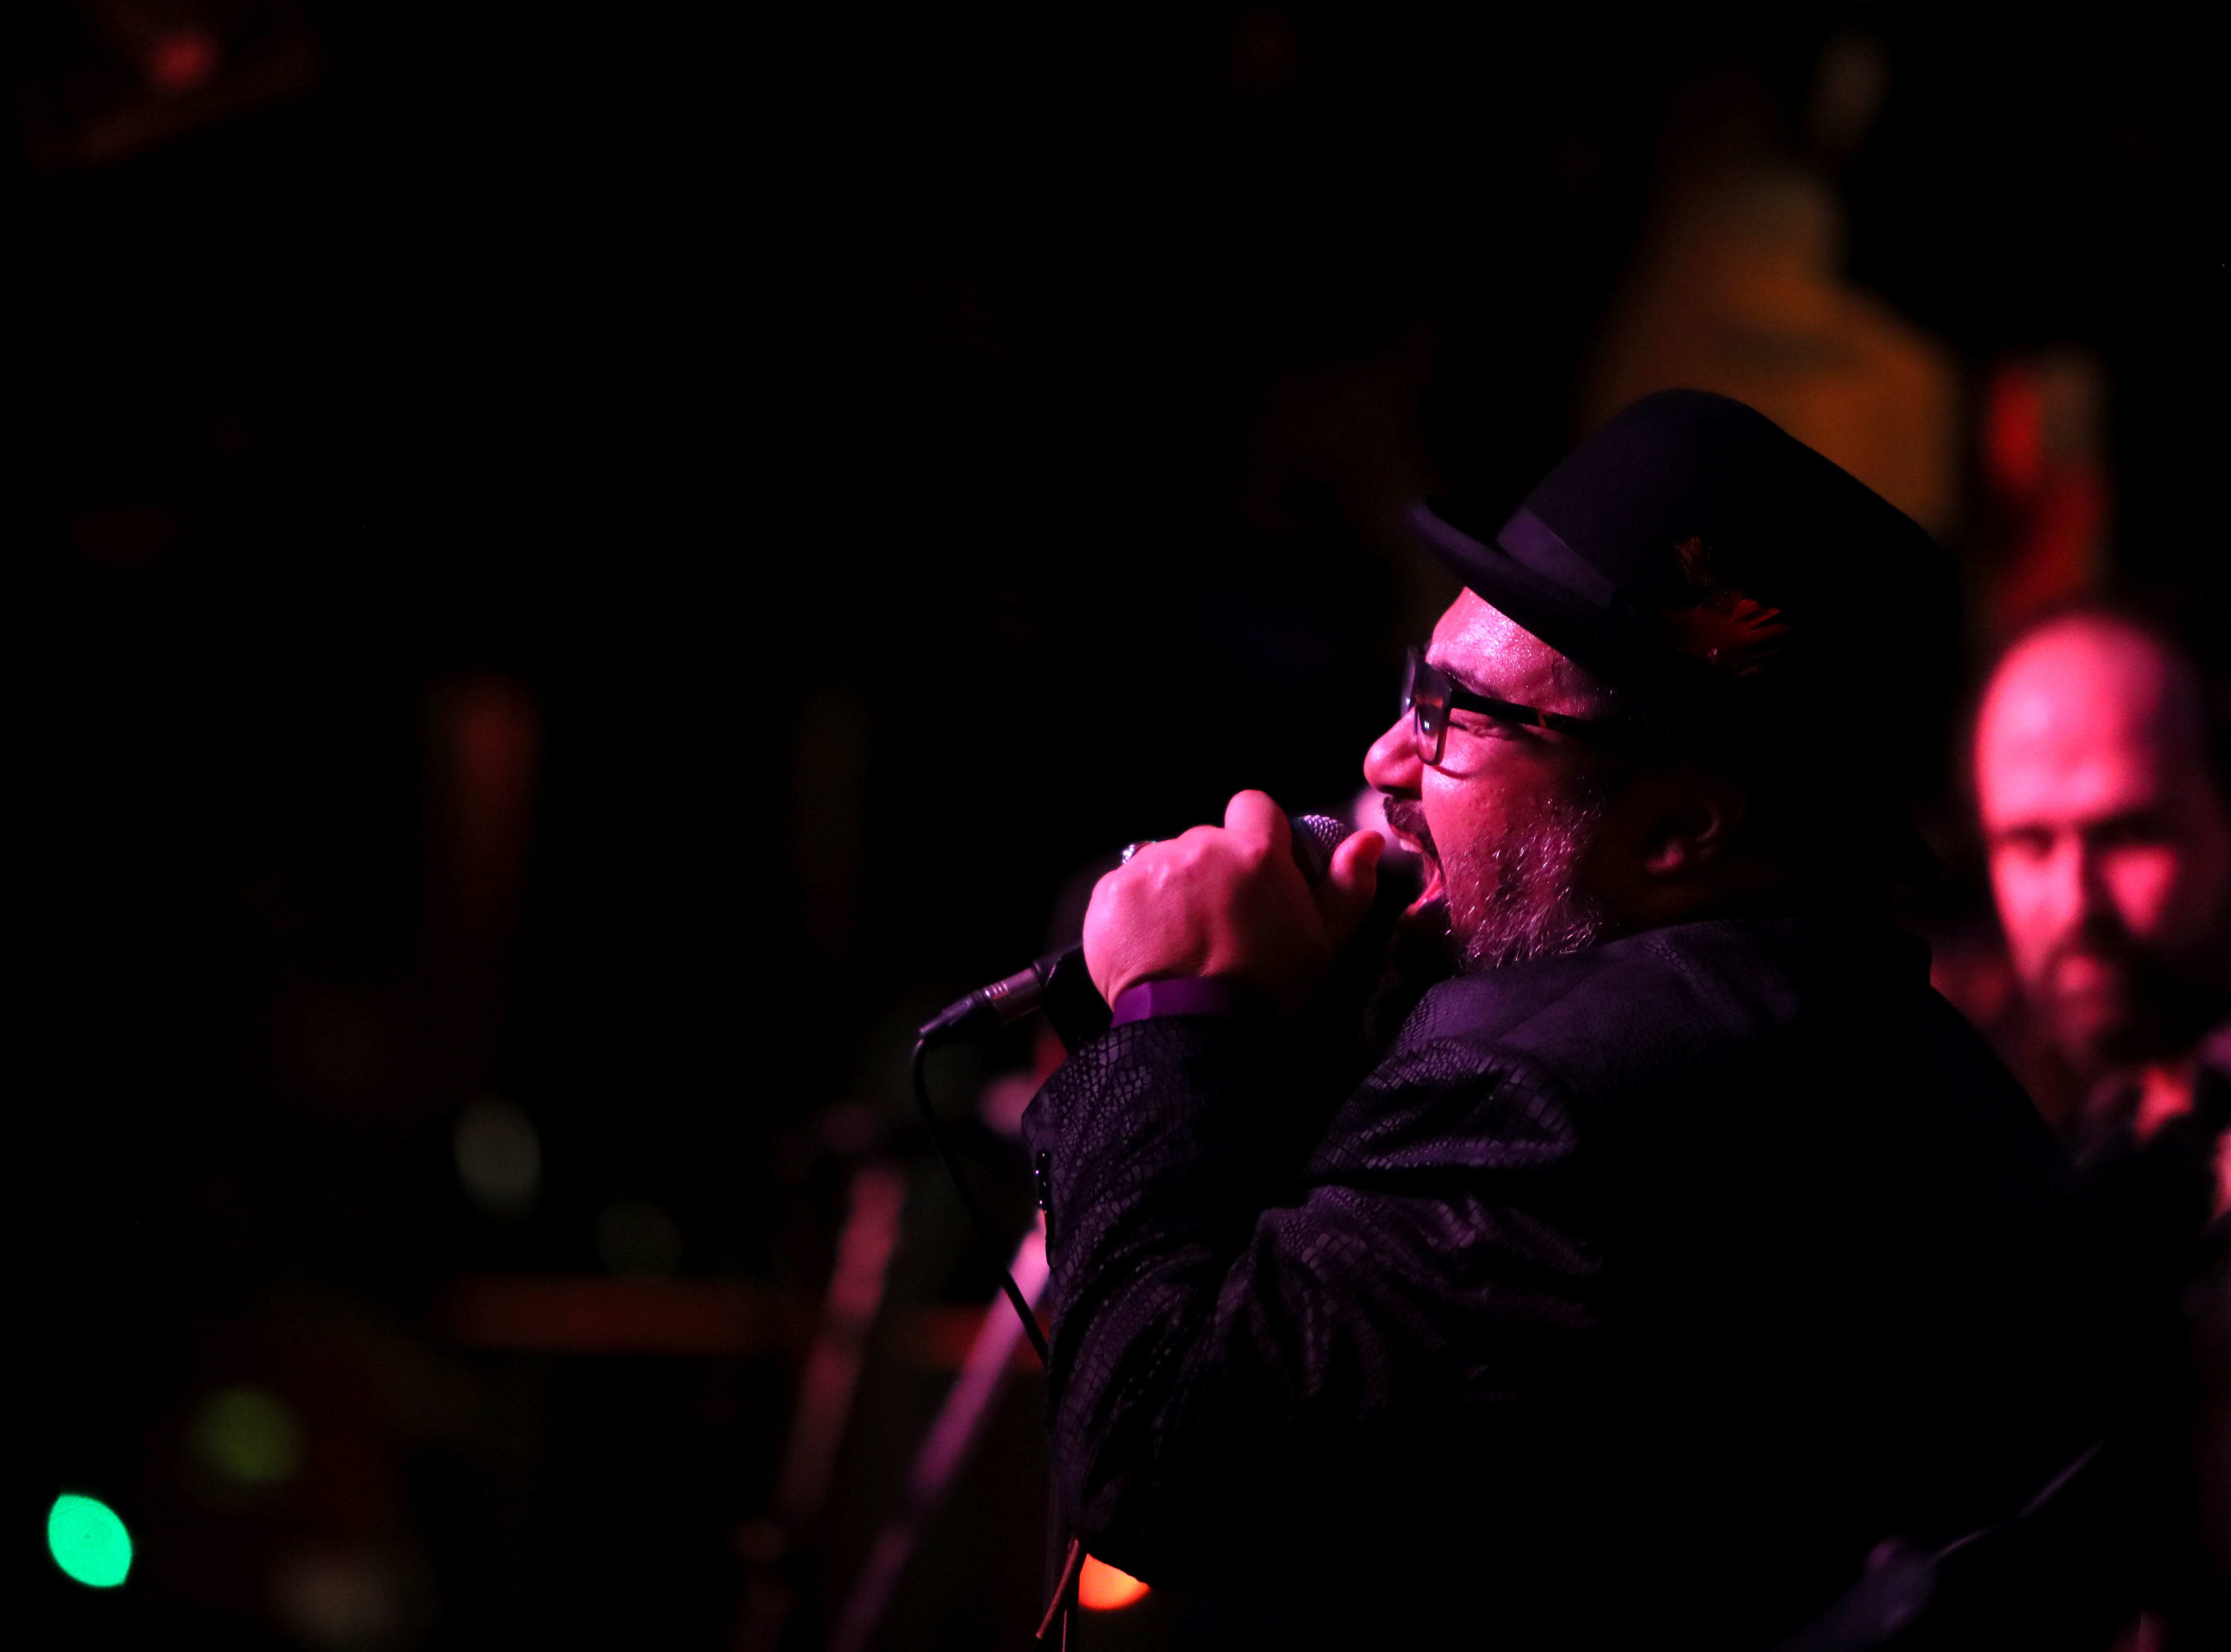 Celso Salim Band plays at Rum Boogie during the 35th International Blues Challenge on Beale Street Thursday, Jan. 24, 2019.